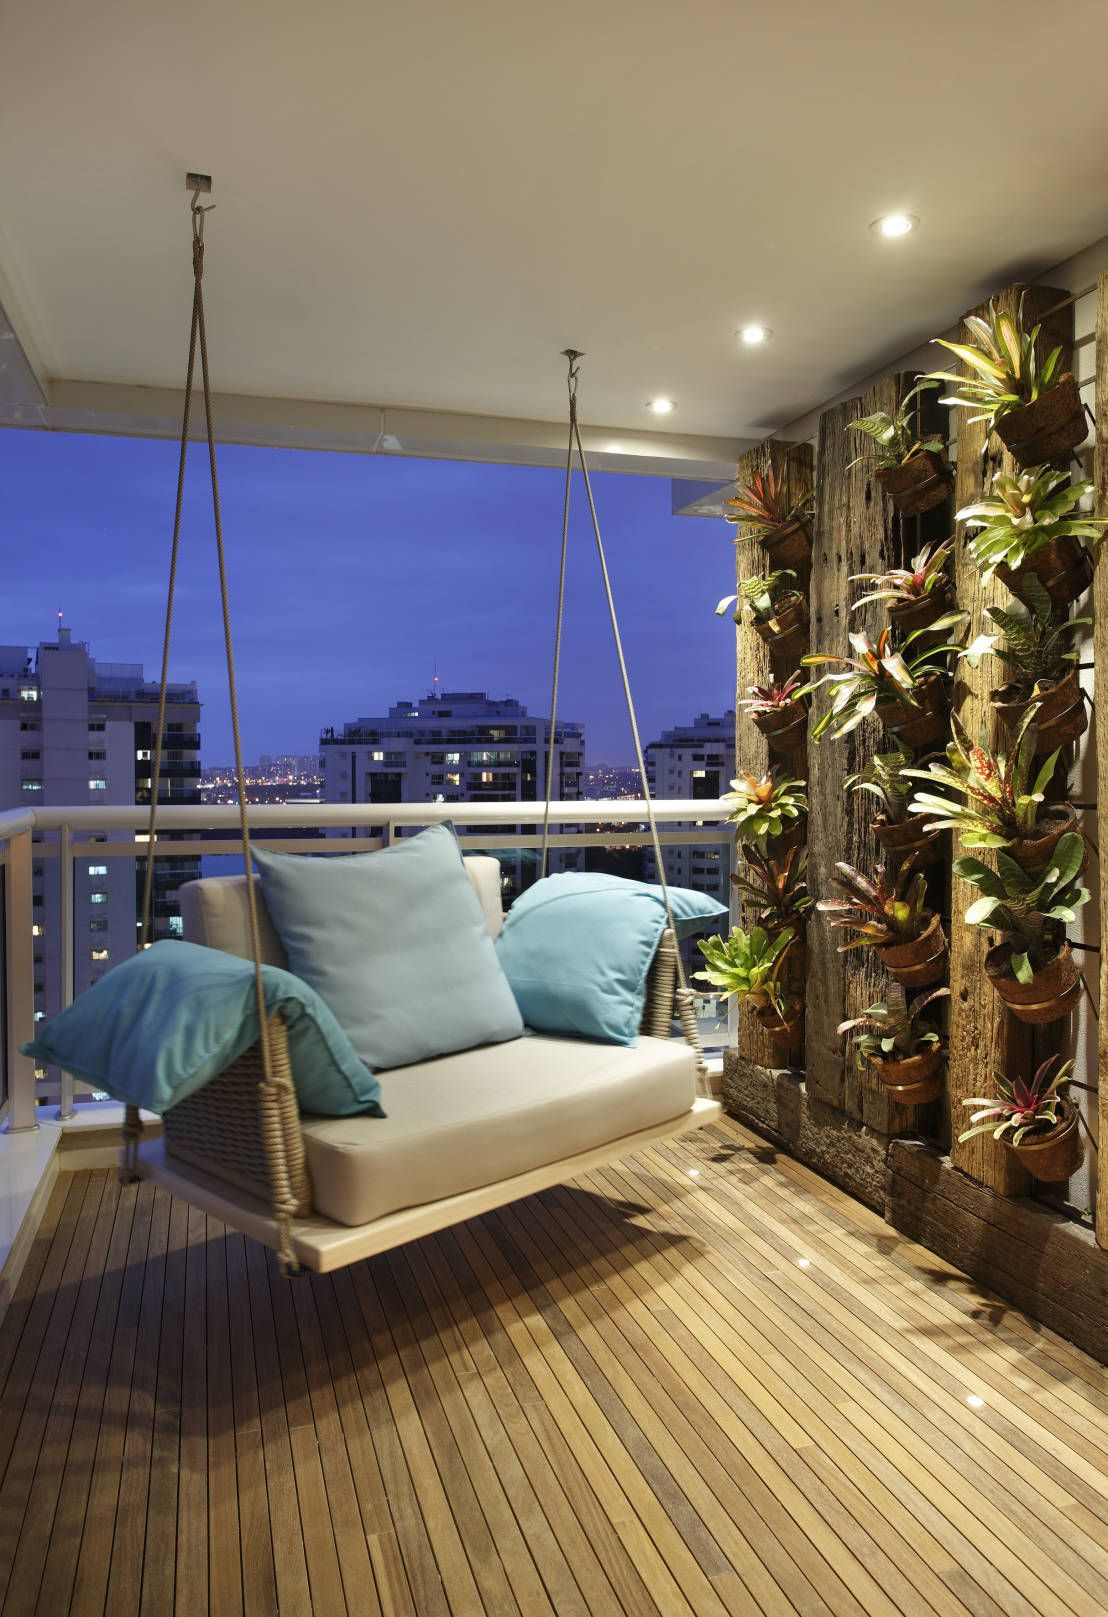 Balkon einrichten: Die coolsten Ideen | Balconies, House and Interiors